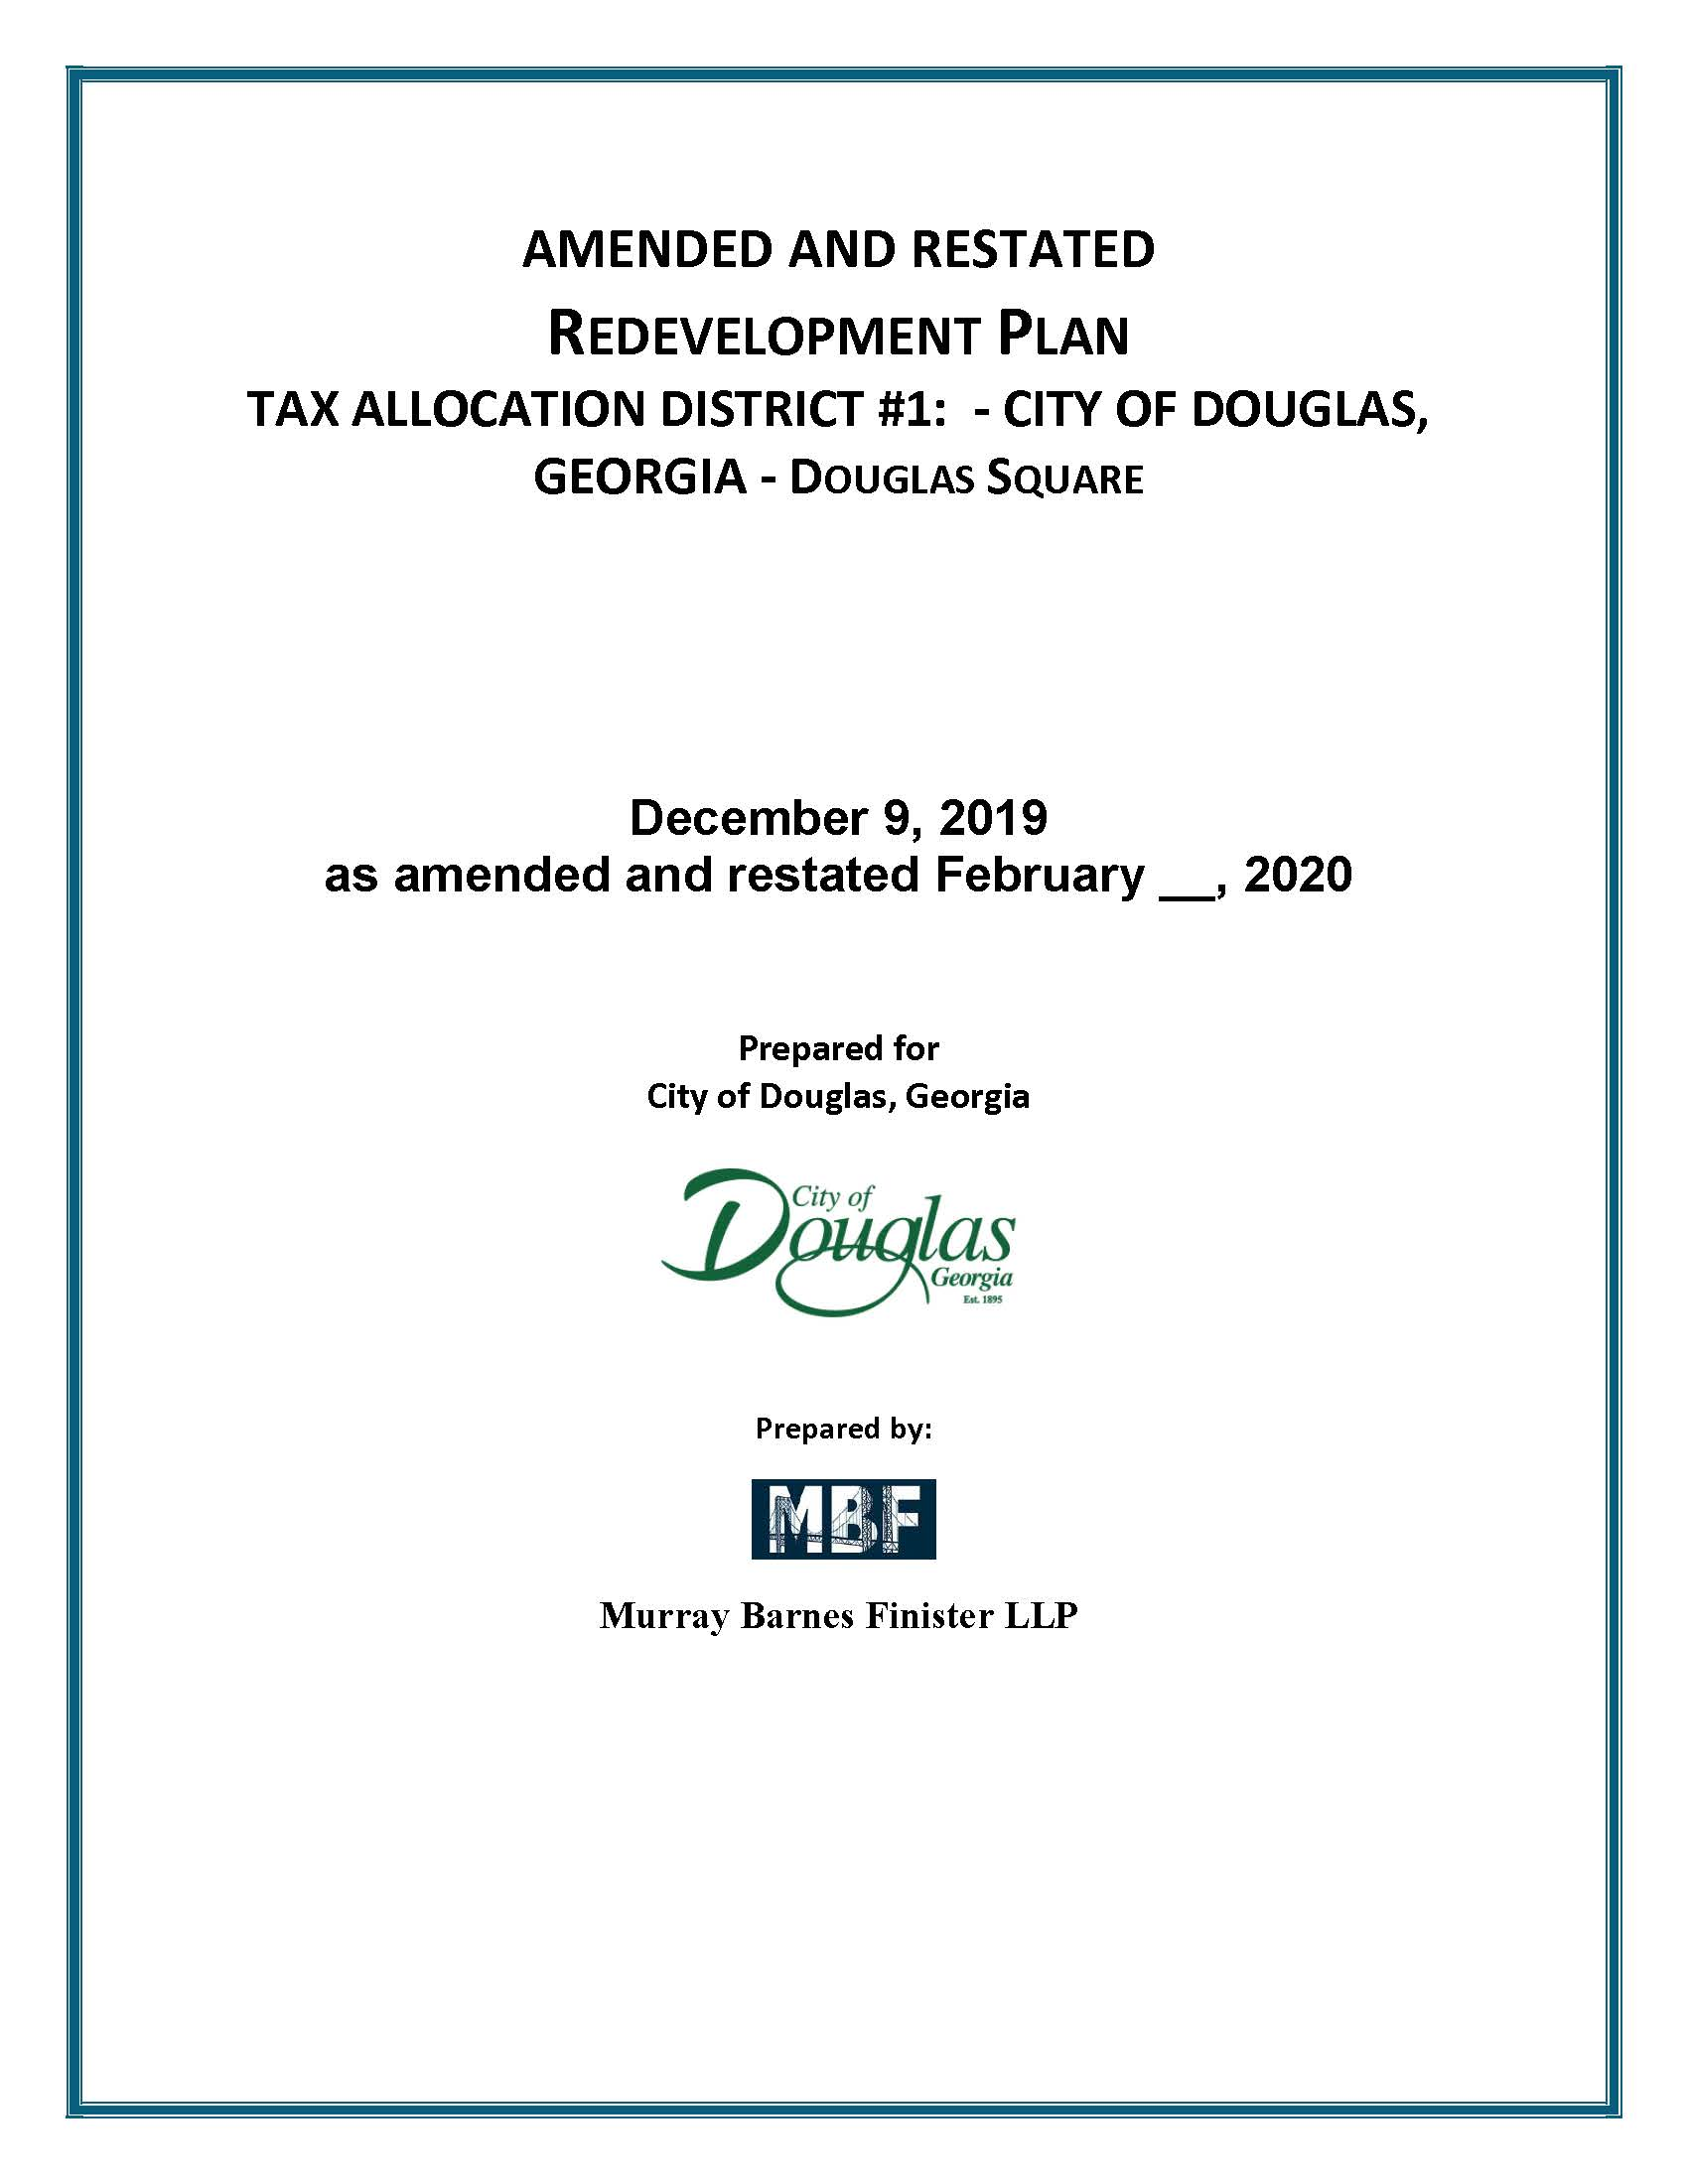 Amended and Restated  Redevelopment Plan City of Douglas